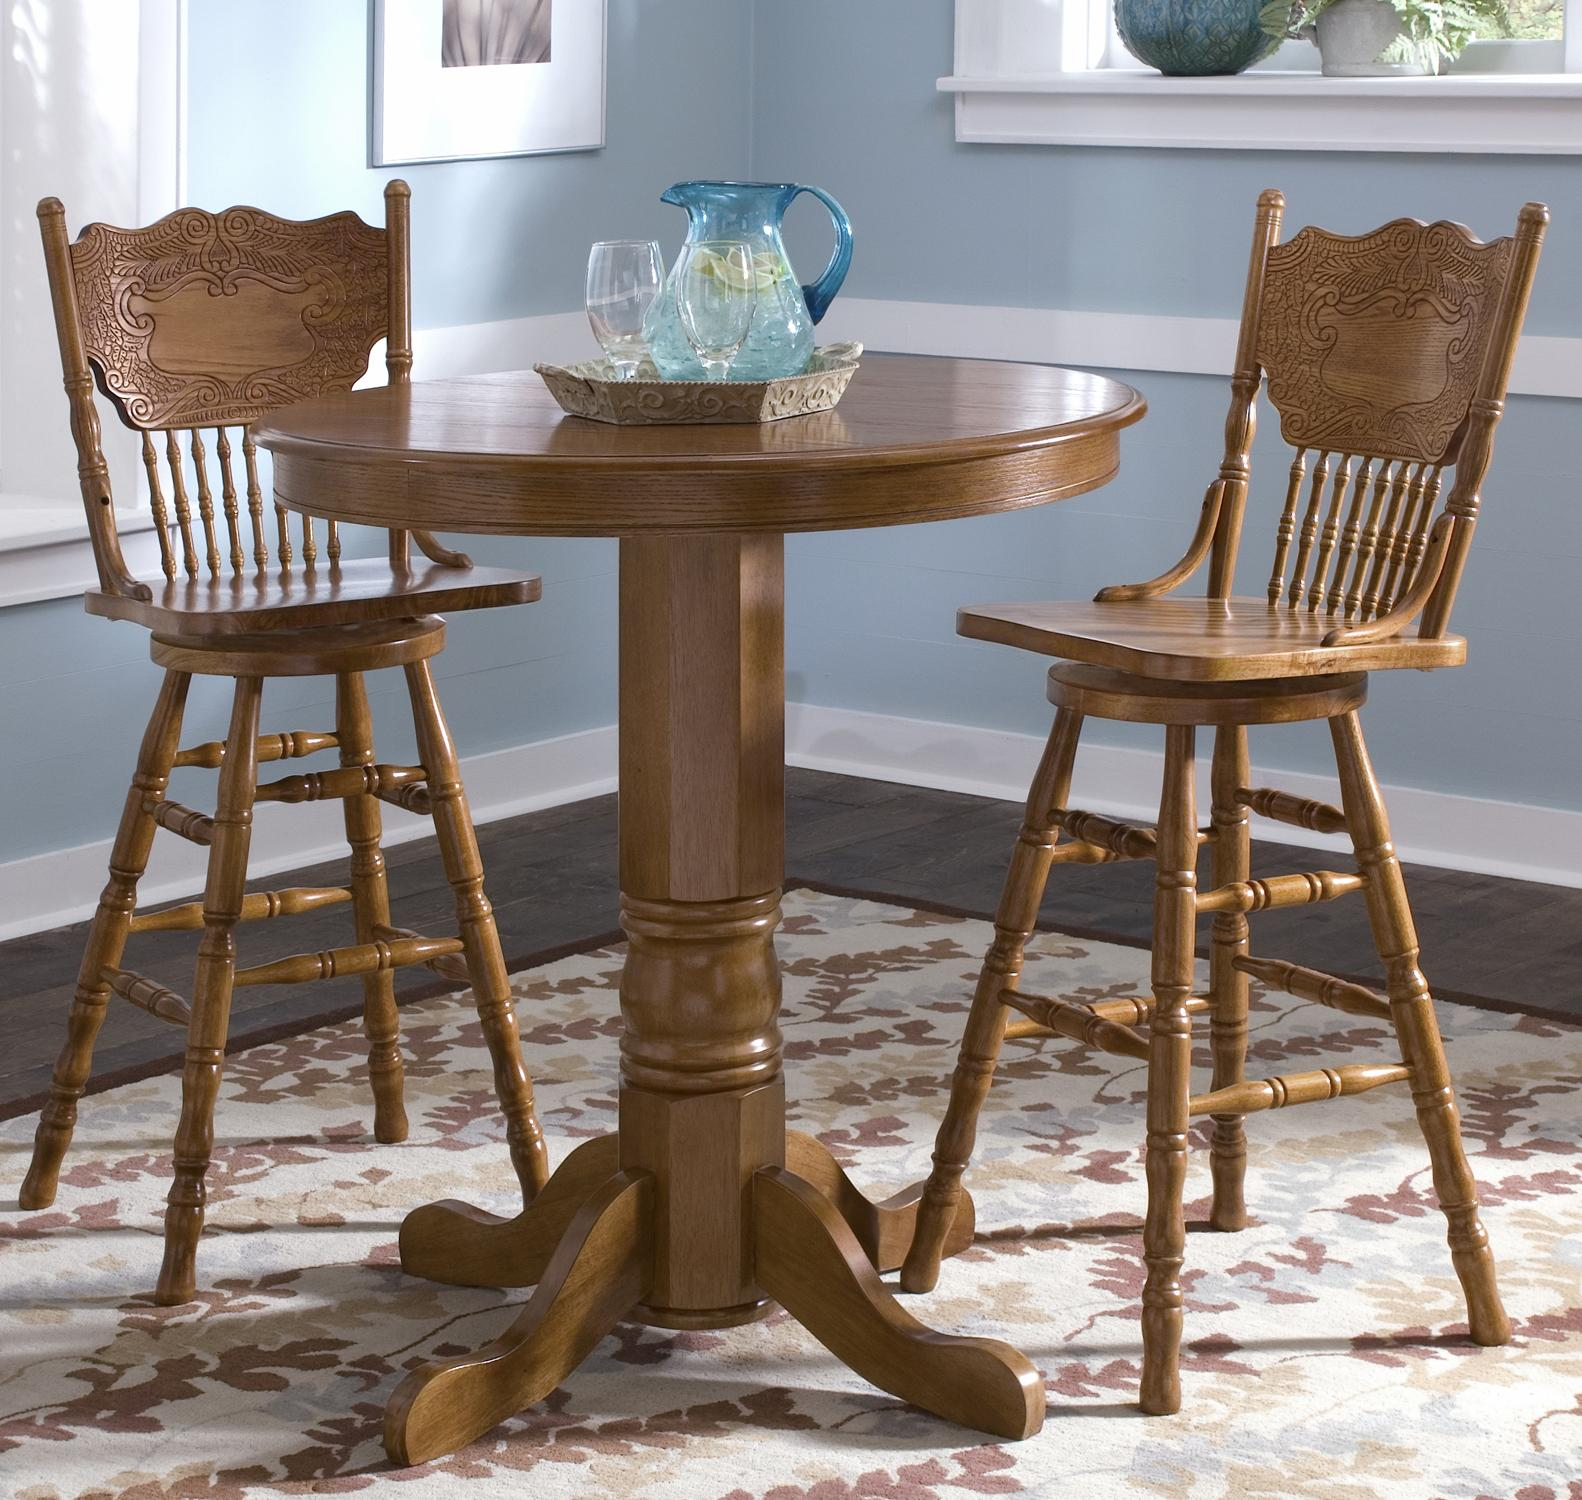 3 Piece Round Pub Table Dining Set By Liberty Furniture